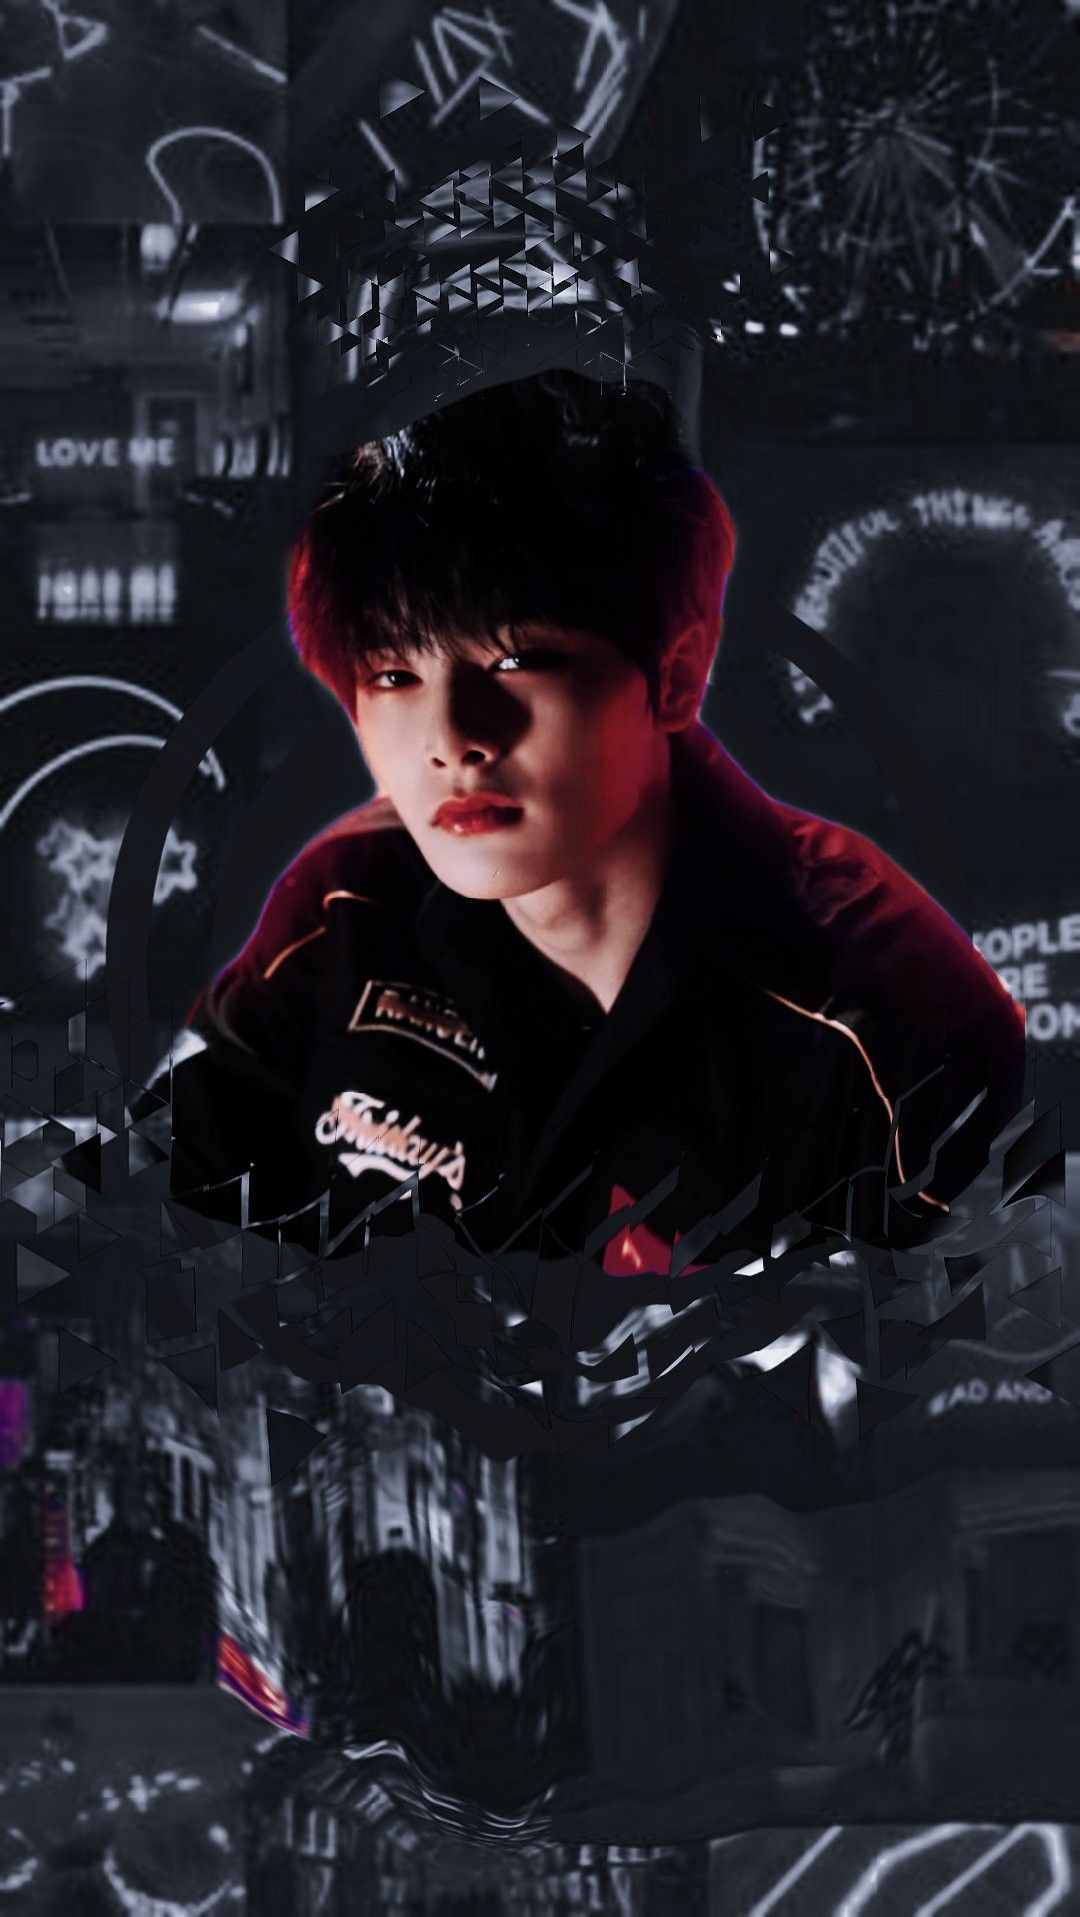 Straykids Go Live Wallpaper Hd Edit In 2020 Live Wallpapers Wallpaper Photoshoot